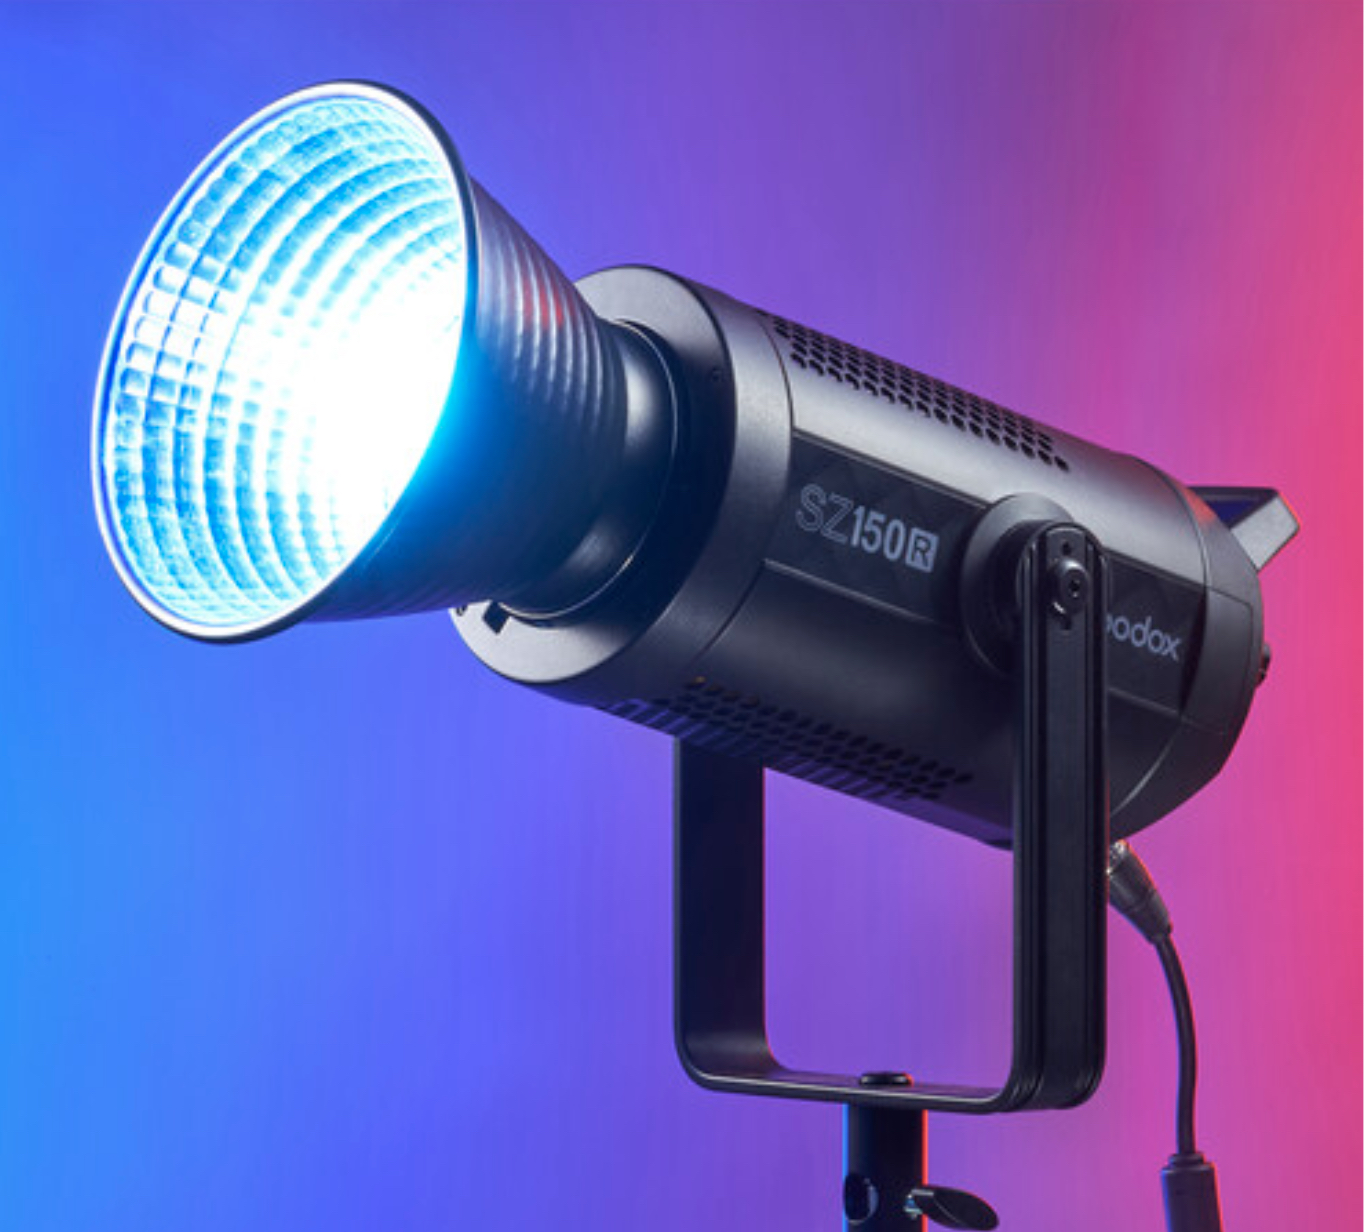 Godox SZ150R Review - Newsshooter